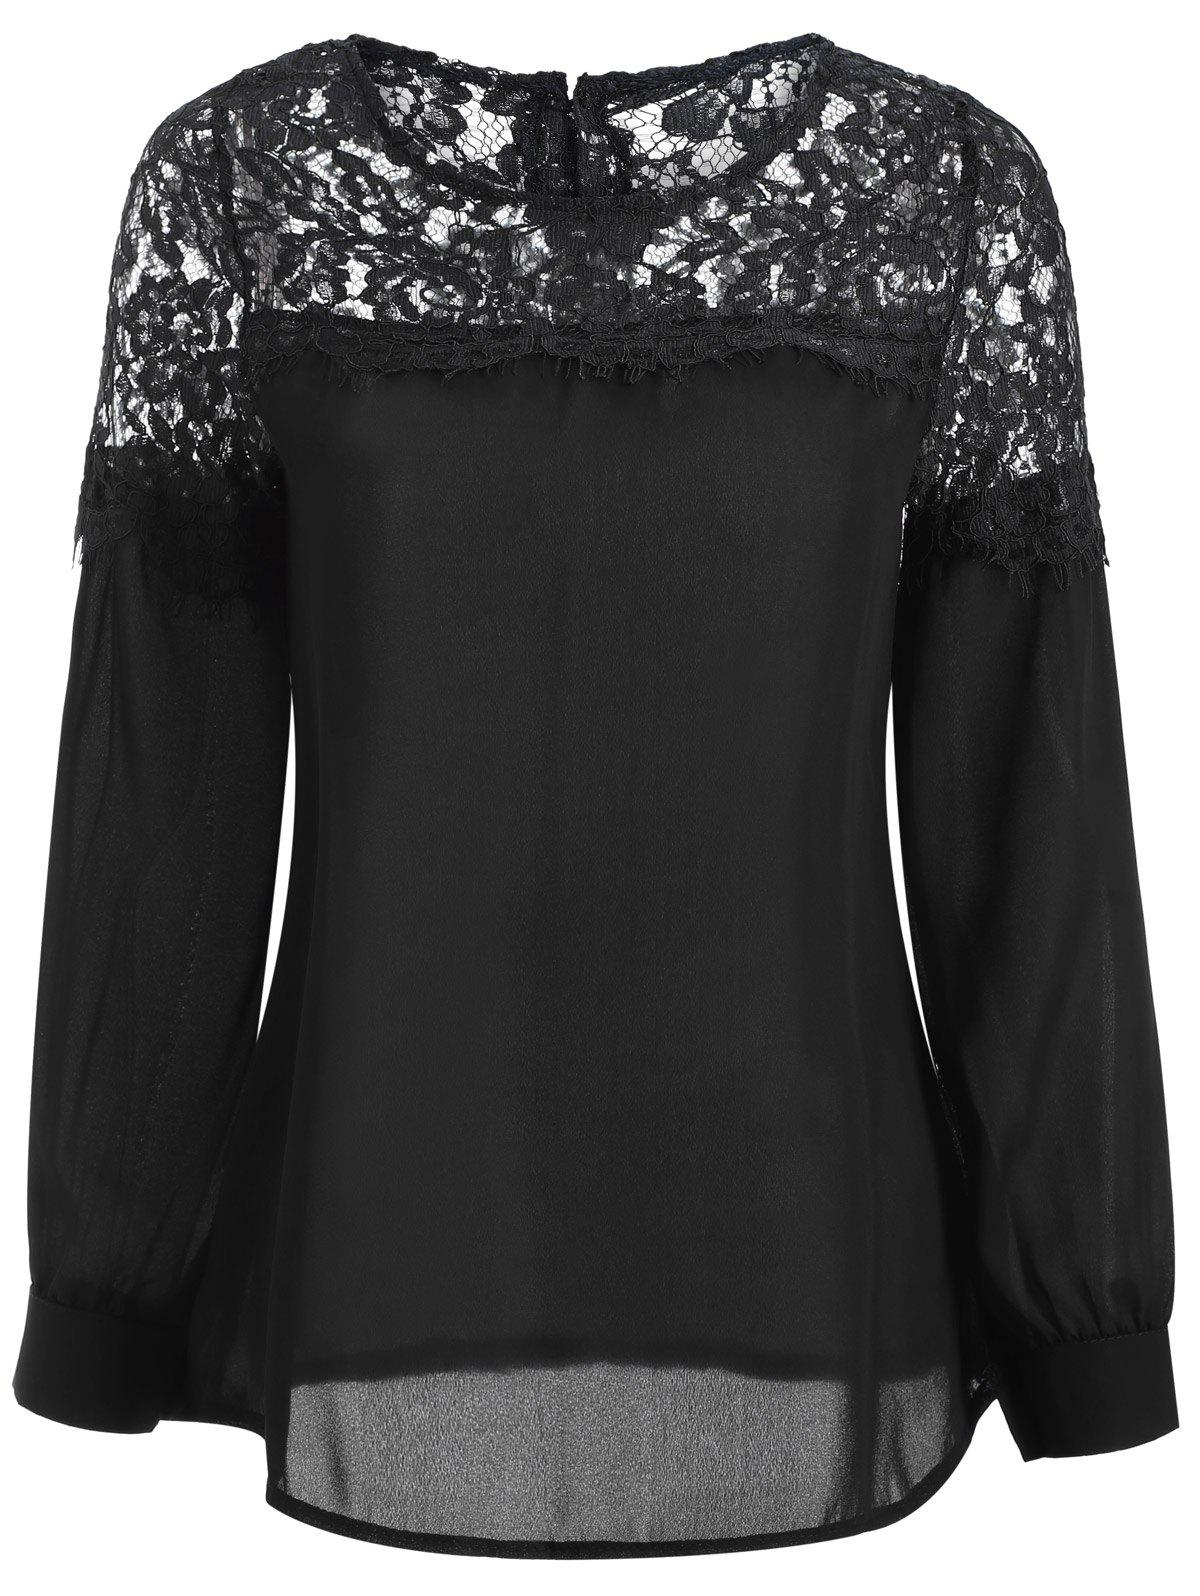 Sheer Lace Yoke Blouse - Noir S